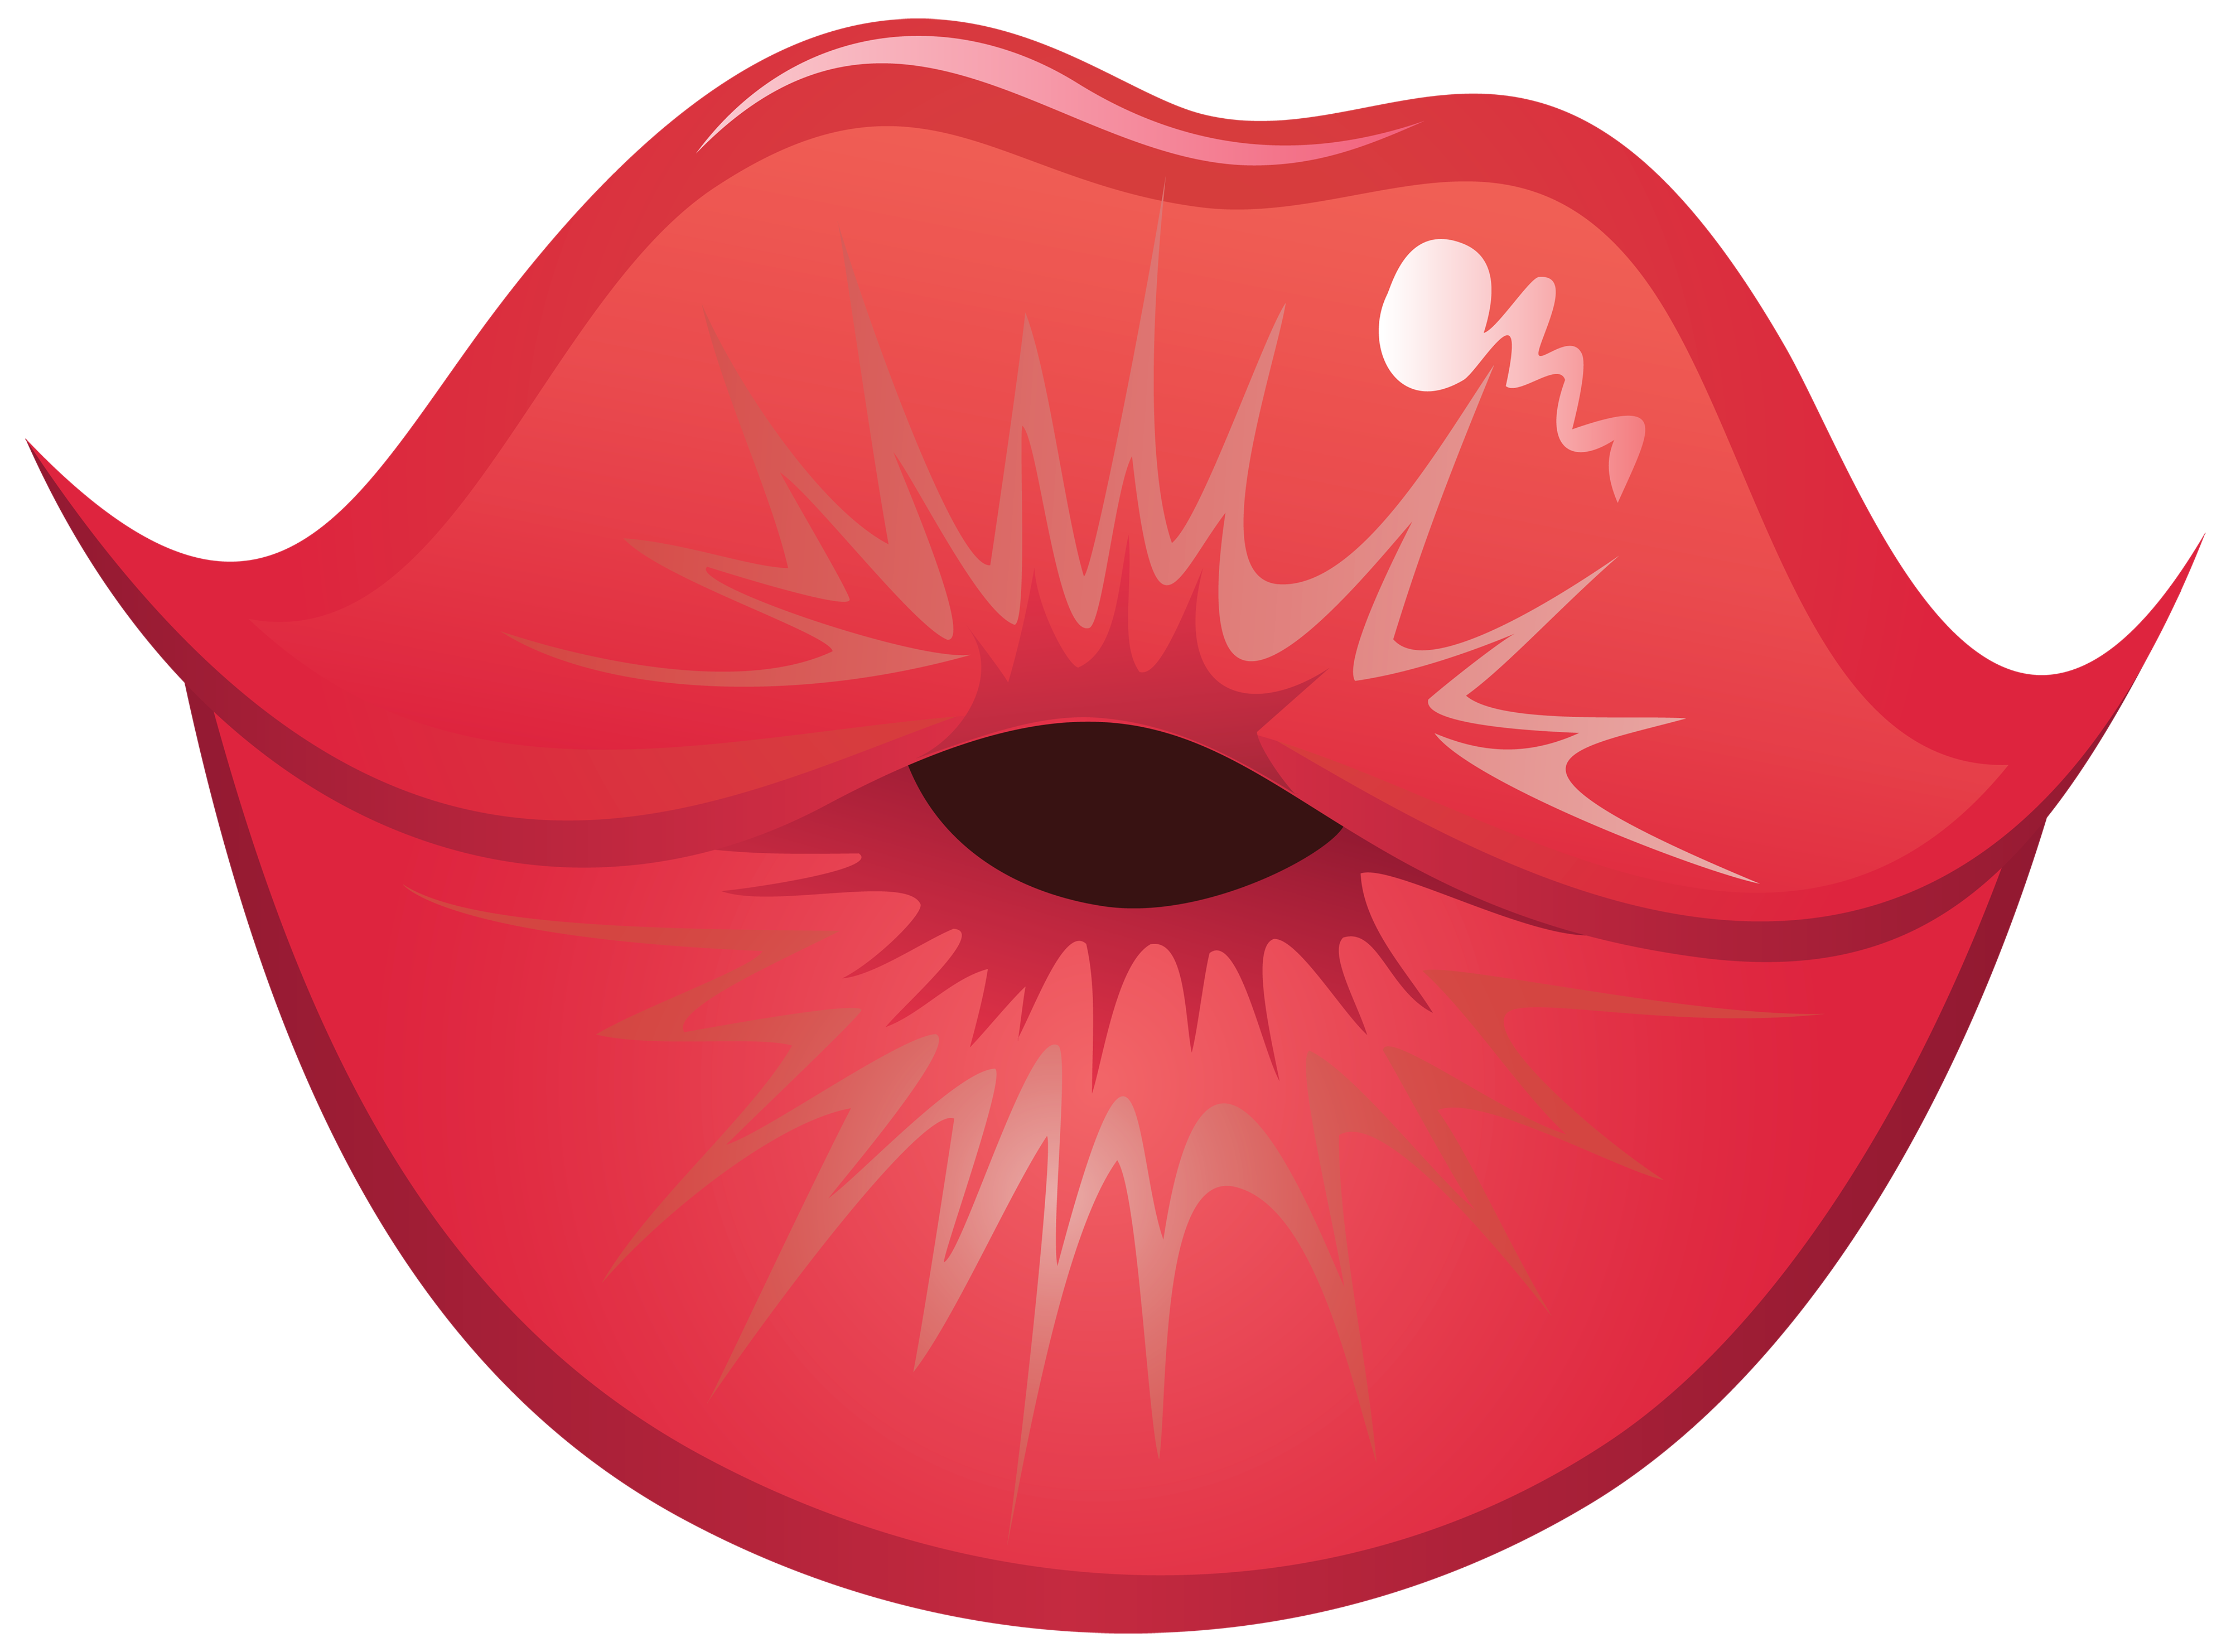 4000x2962 Kiss Lips Png Clipart